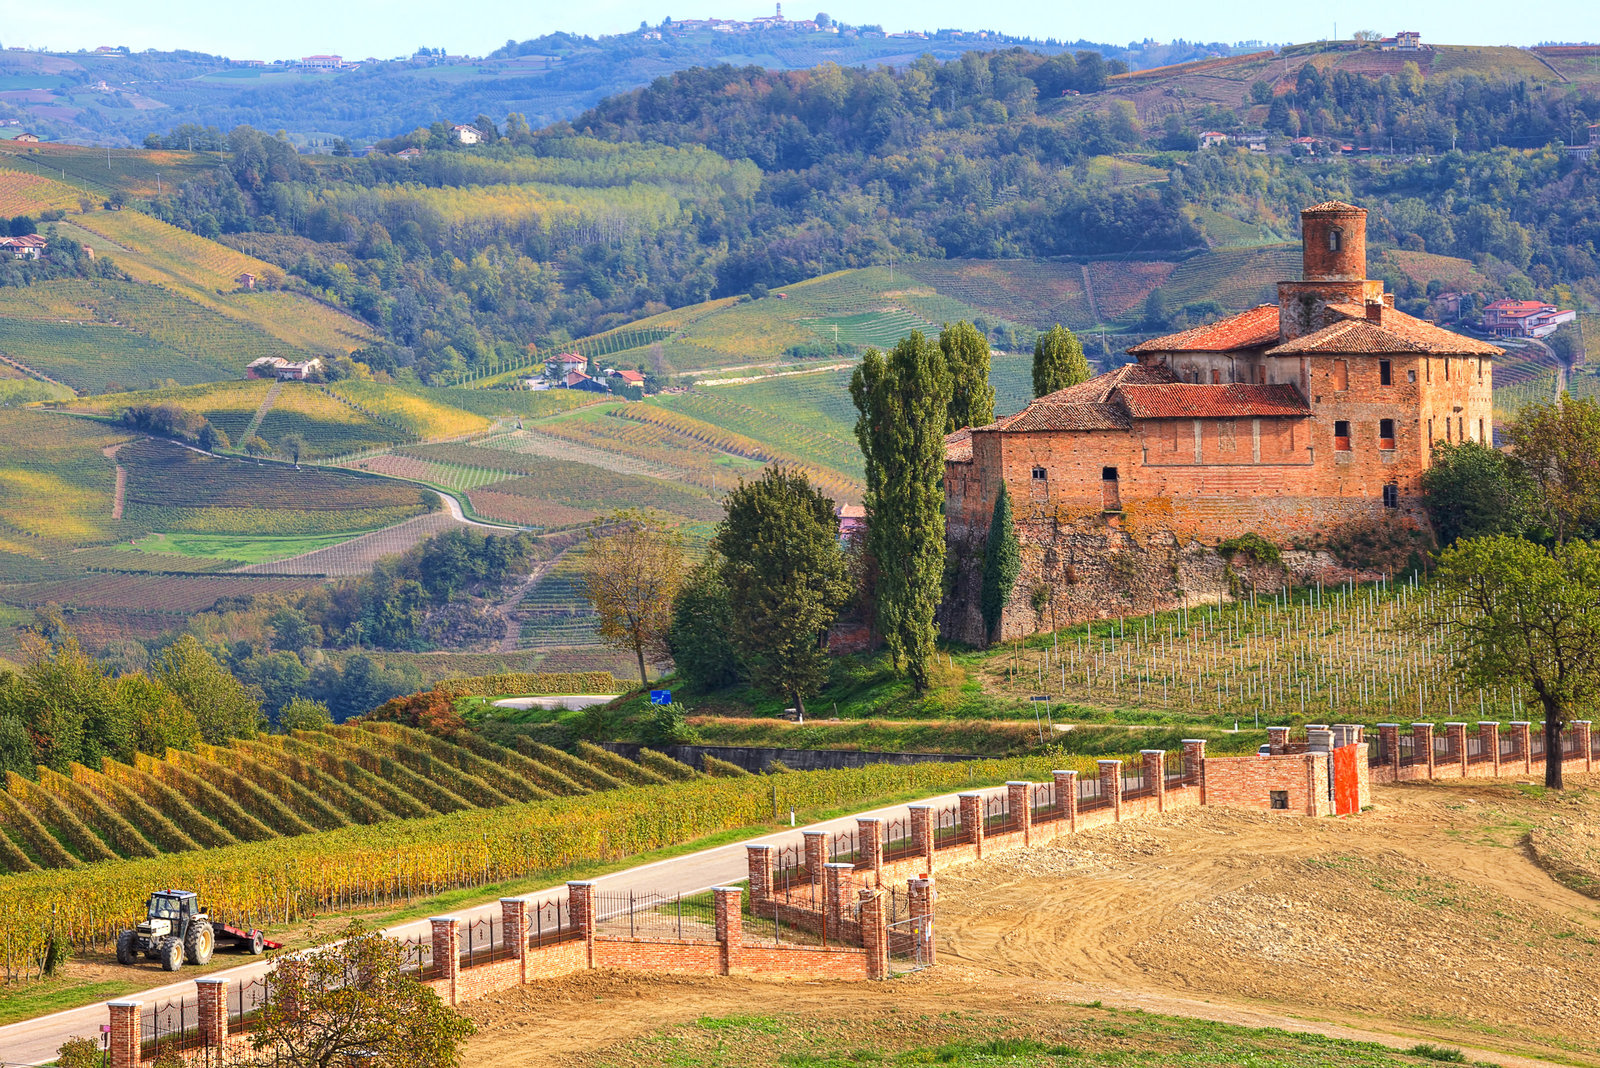 vineyards of Langhe in Piedmont, Northern Italy